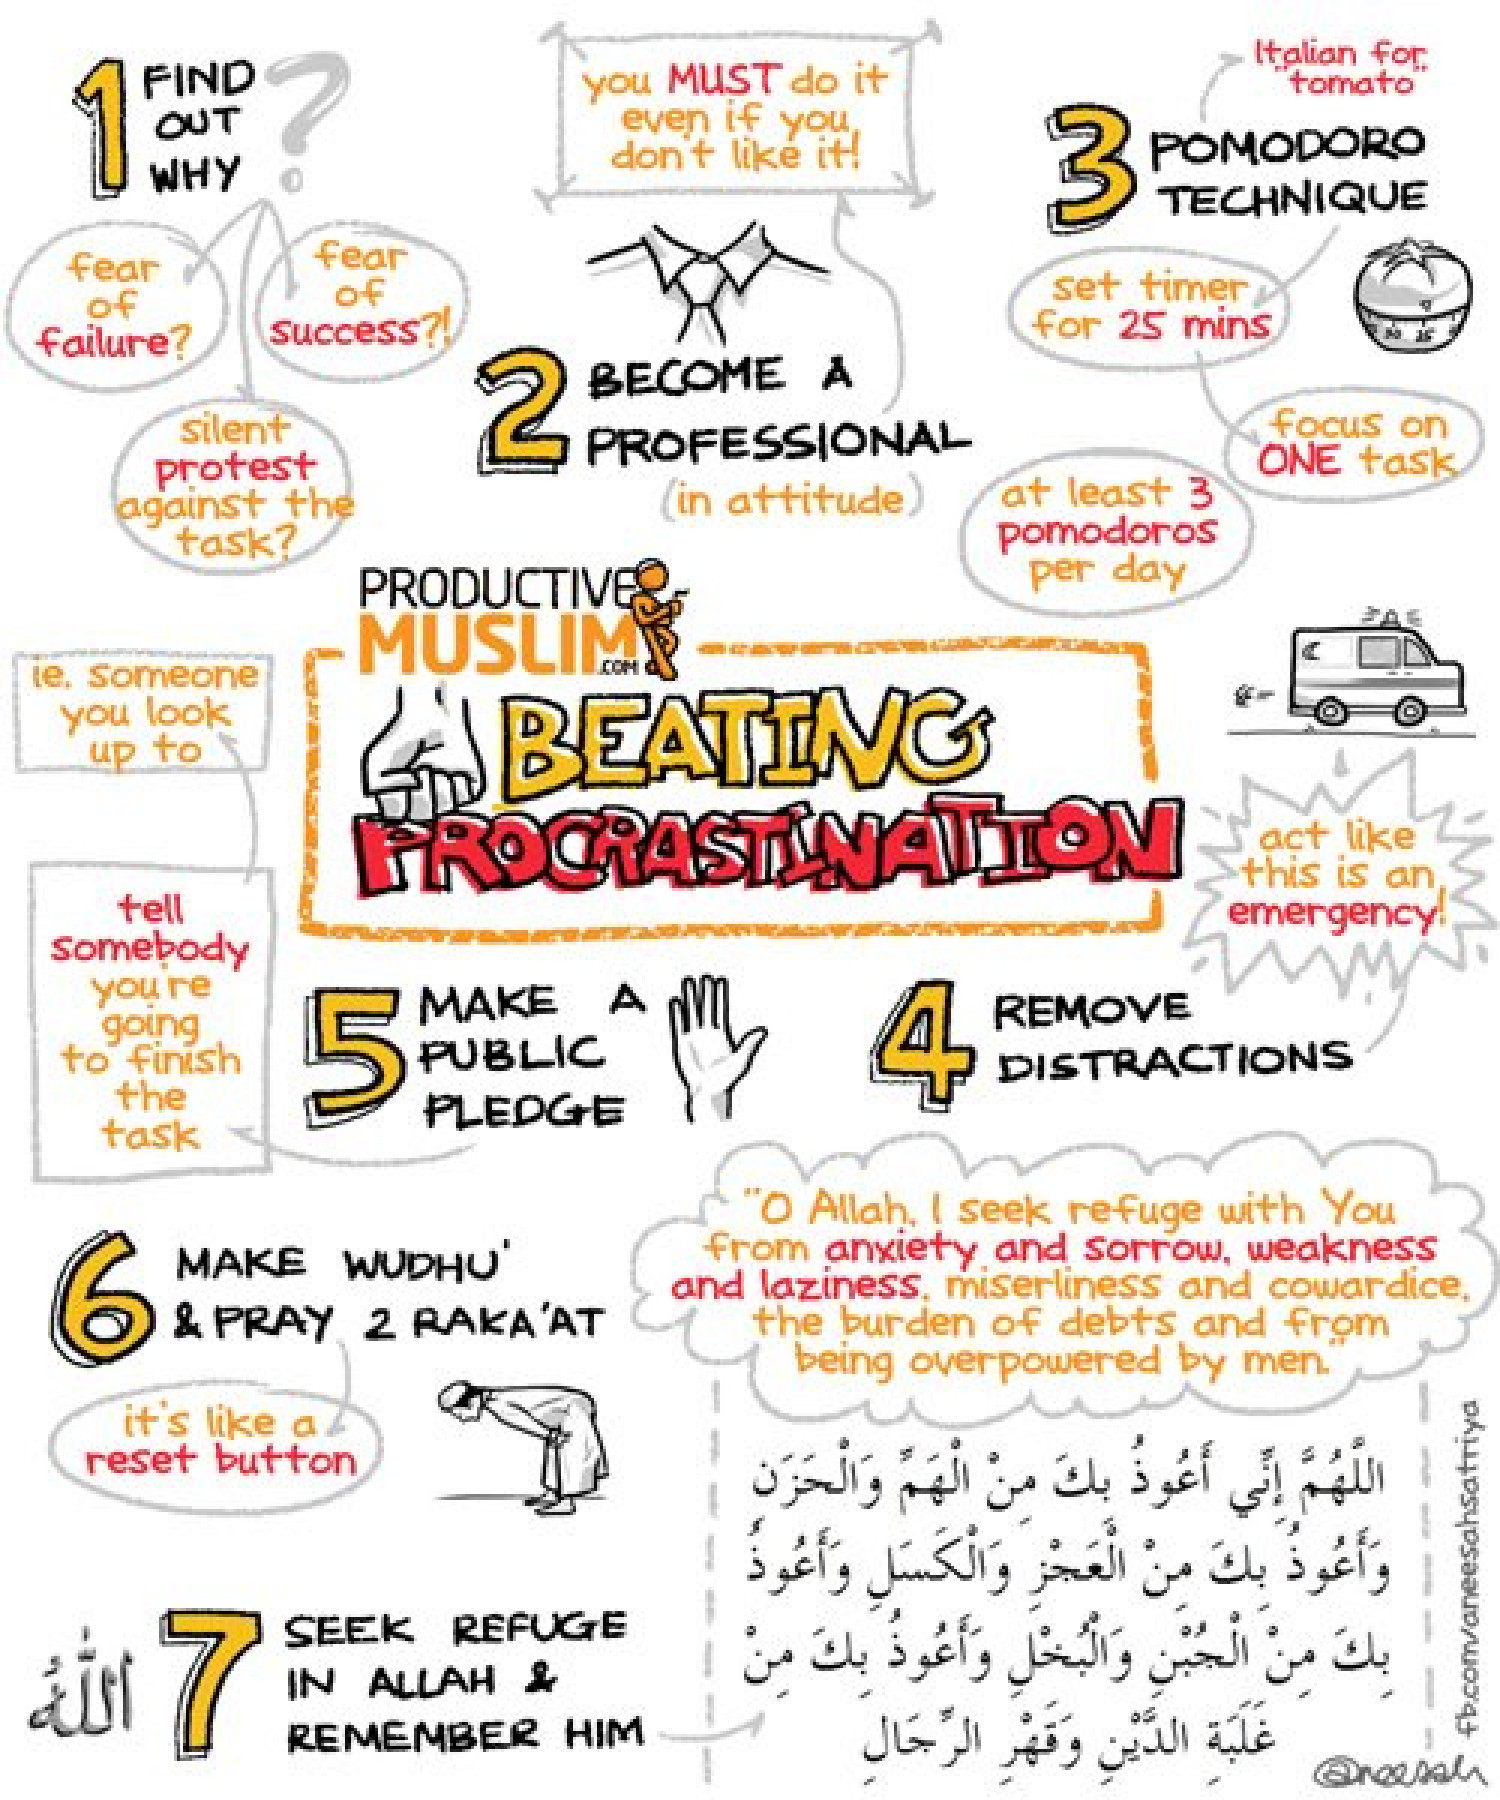 Beating Procrastination Infographic